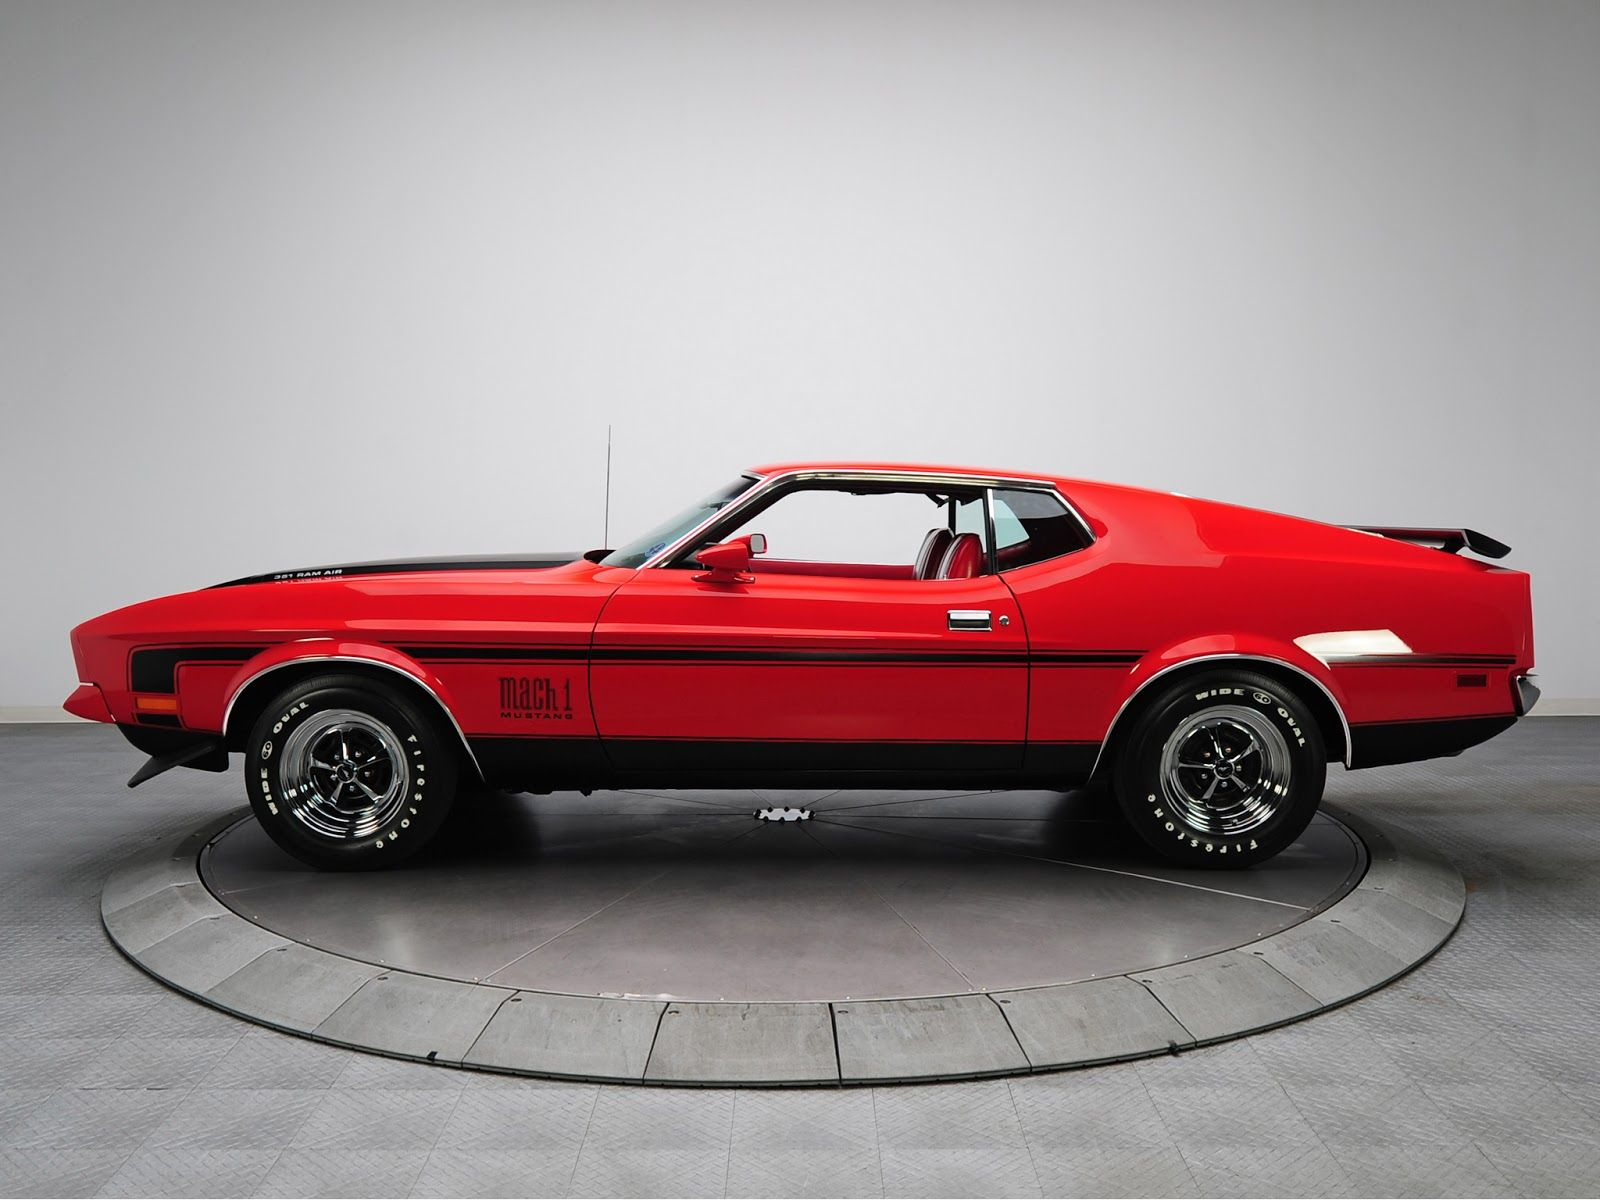 1971 Mustang Mach 1 71 Mustang Mach 1 Was Featured In The 1971 James Bond Film Diamonds Mustang Mach 1 Mustang Ford Mustang